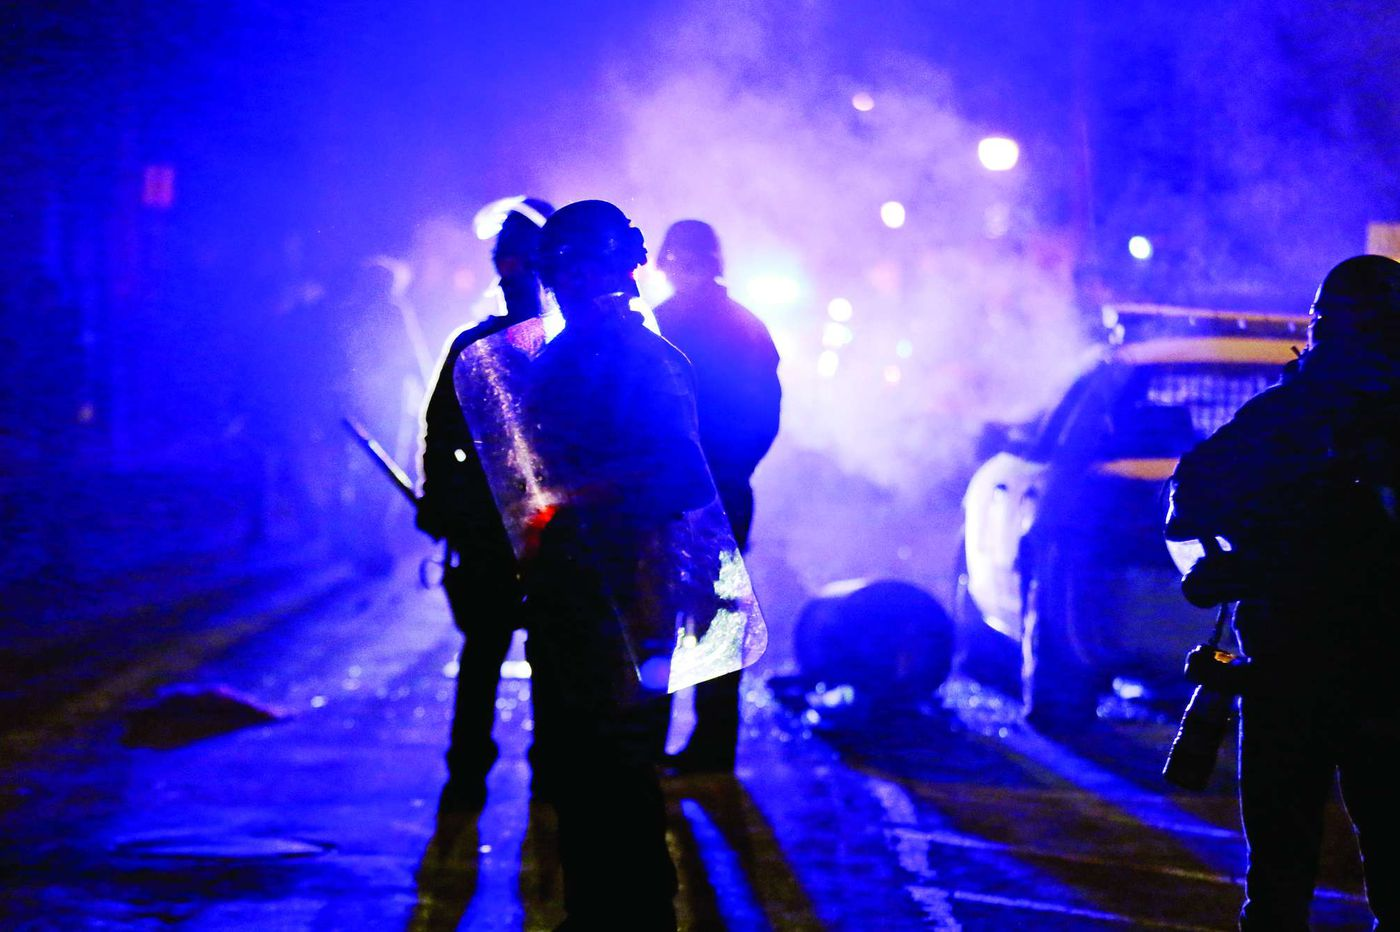 Commentary: Democratic policing can lead to more accountability